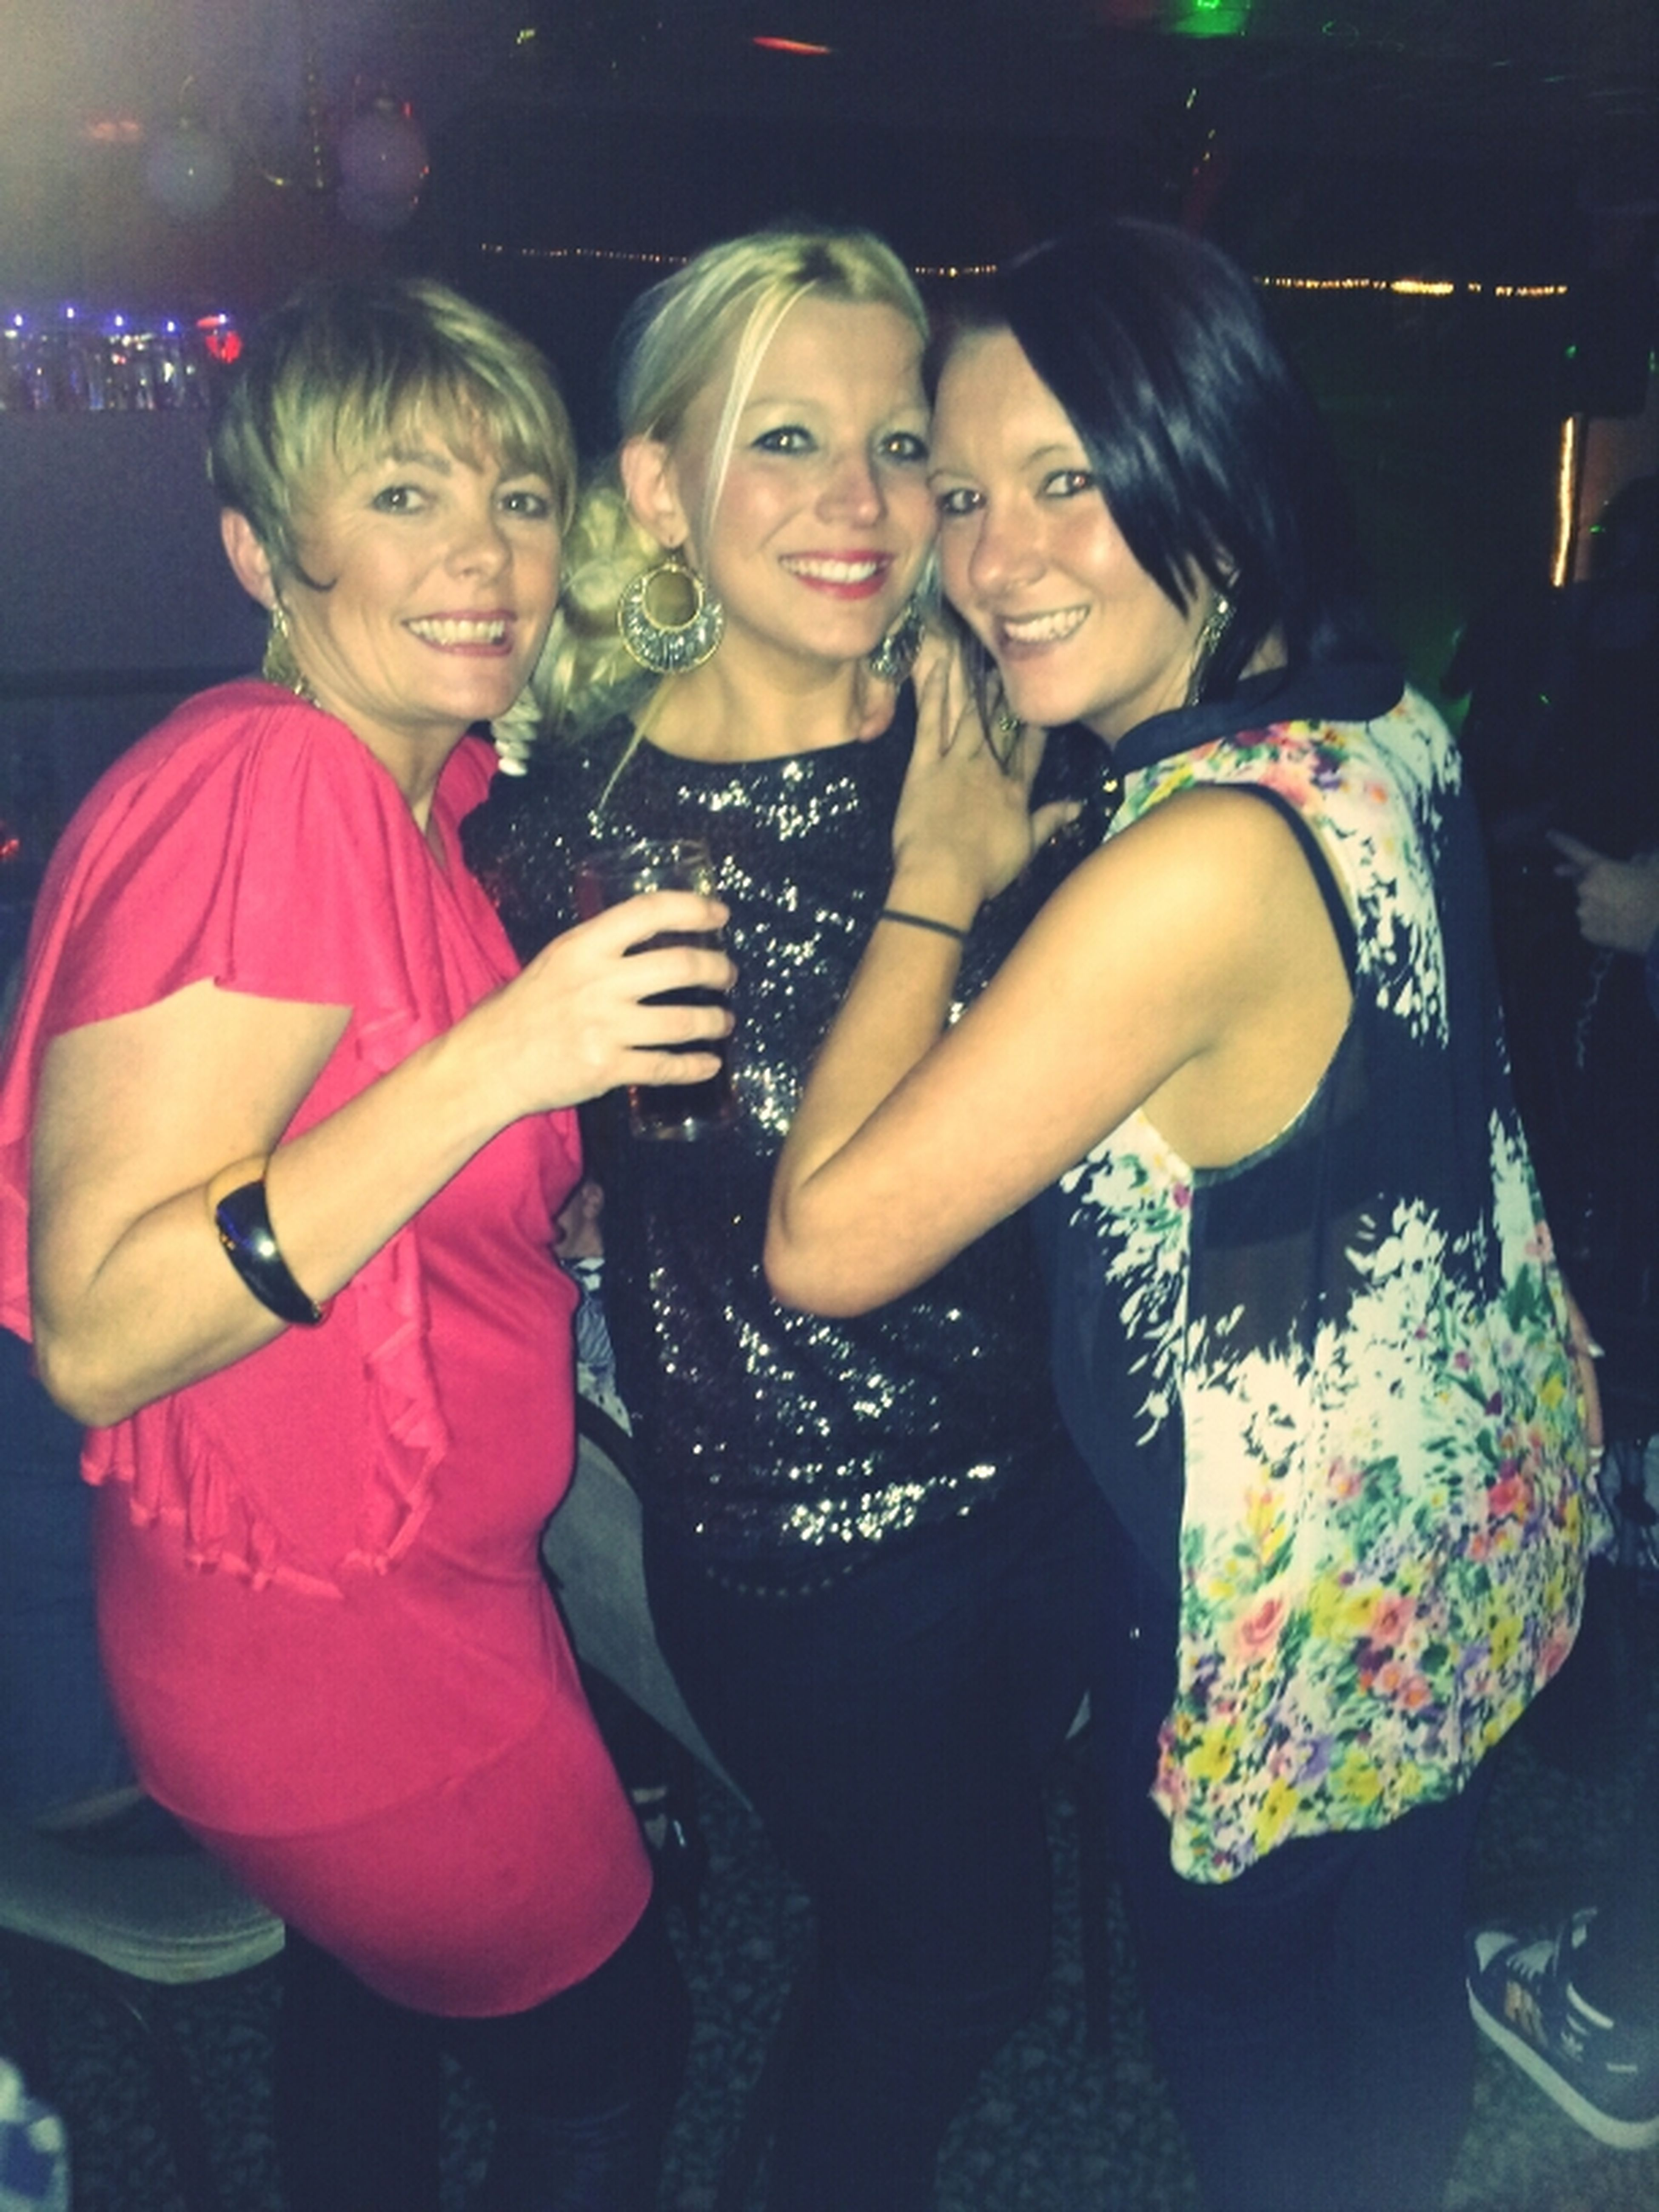 Seeing the new year in with my girlies 2012